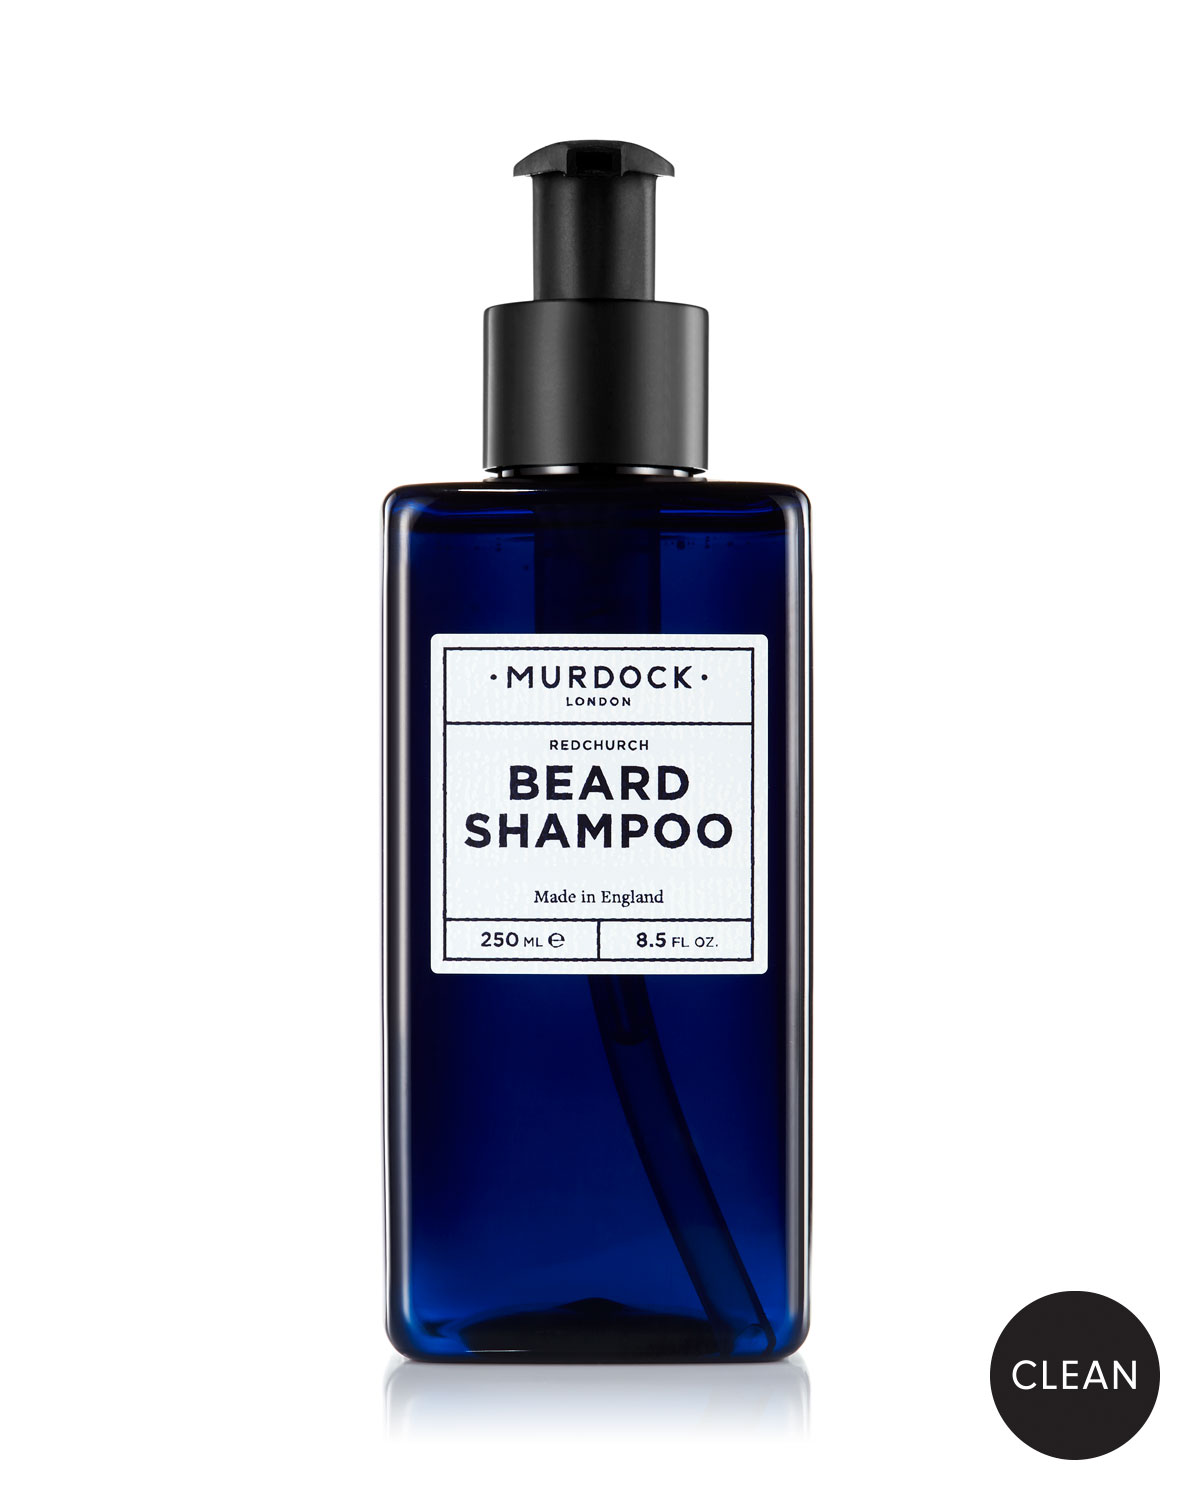 Murdock London Beard Shampoo, 8.5 oz./ 250 mL